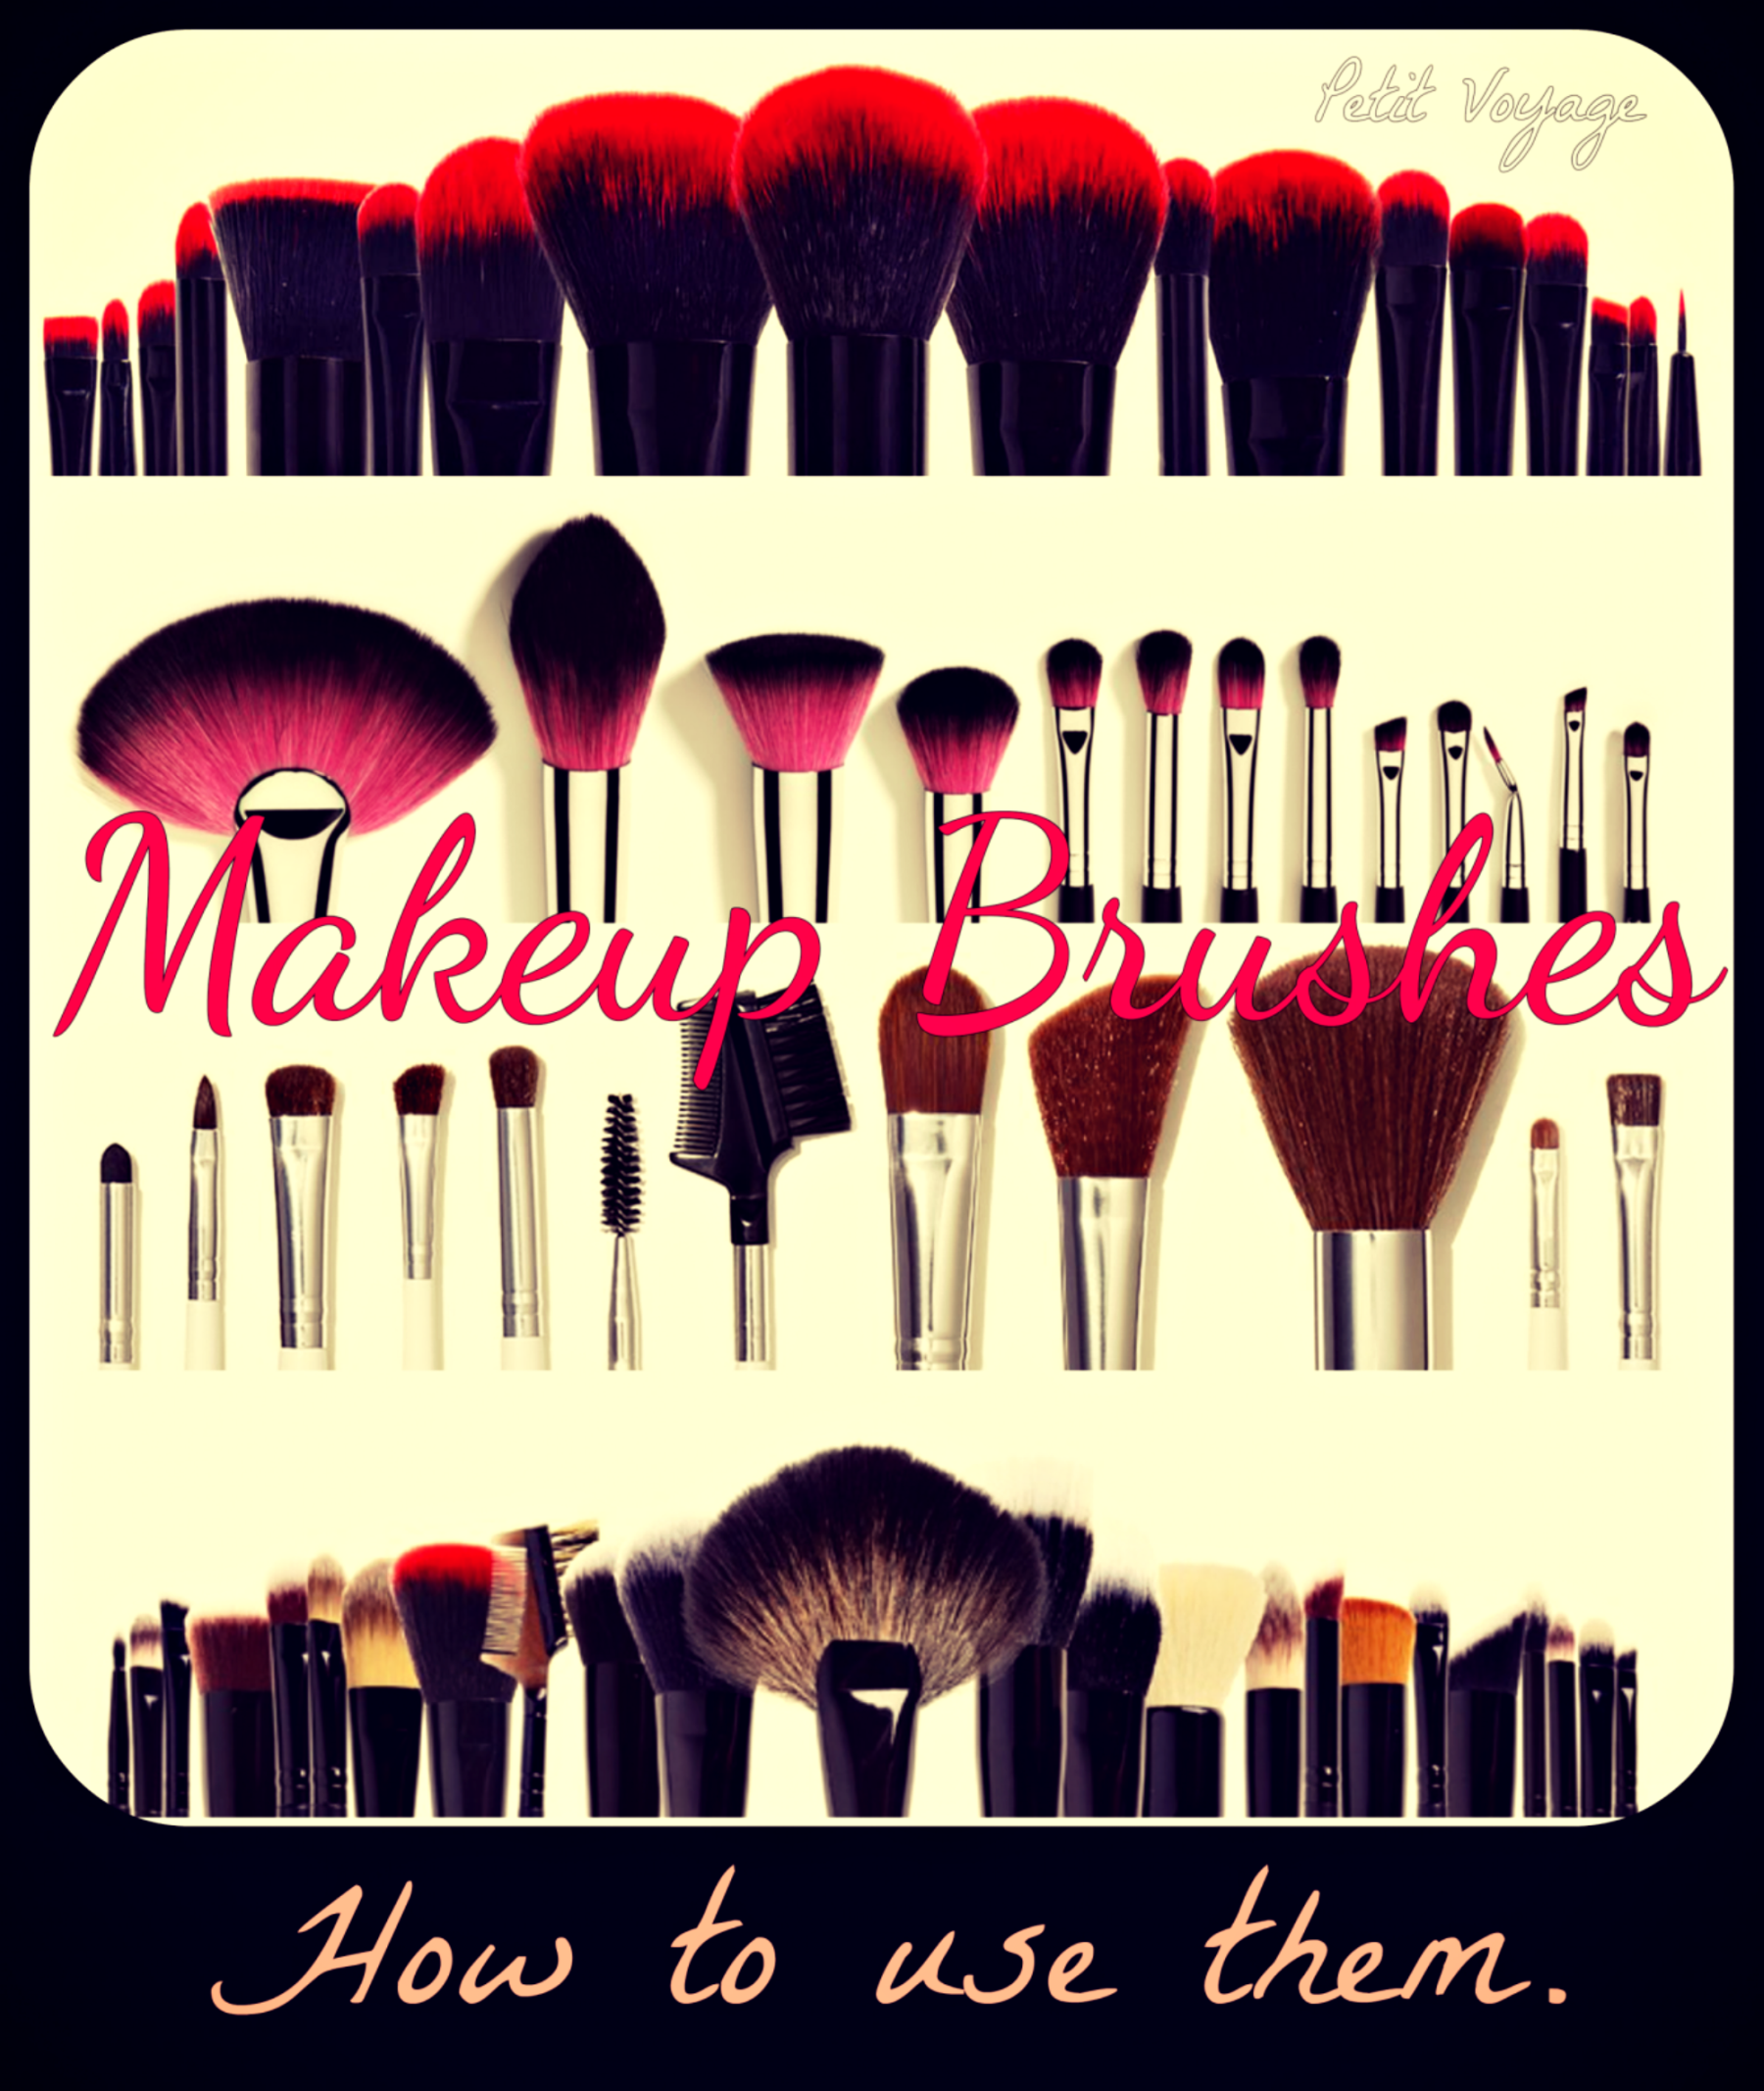 MAKEUP BRUSHES How to identify them & use correctly.